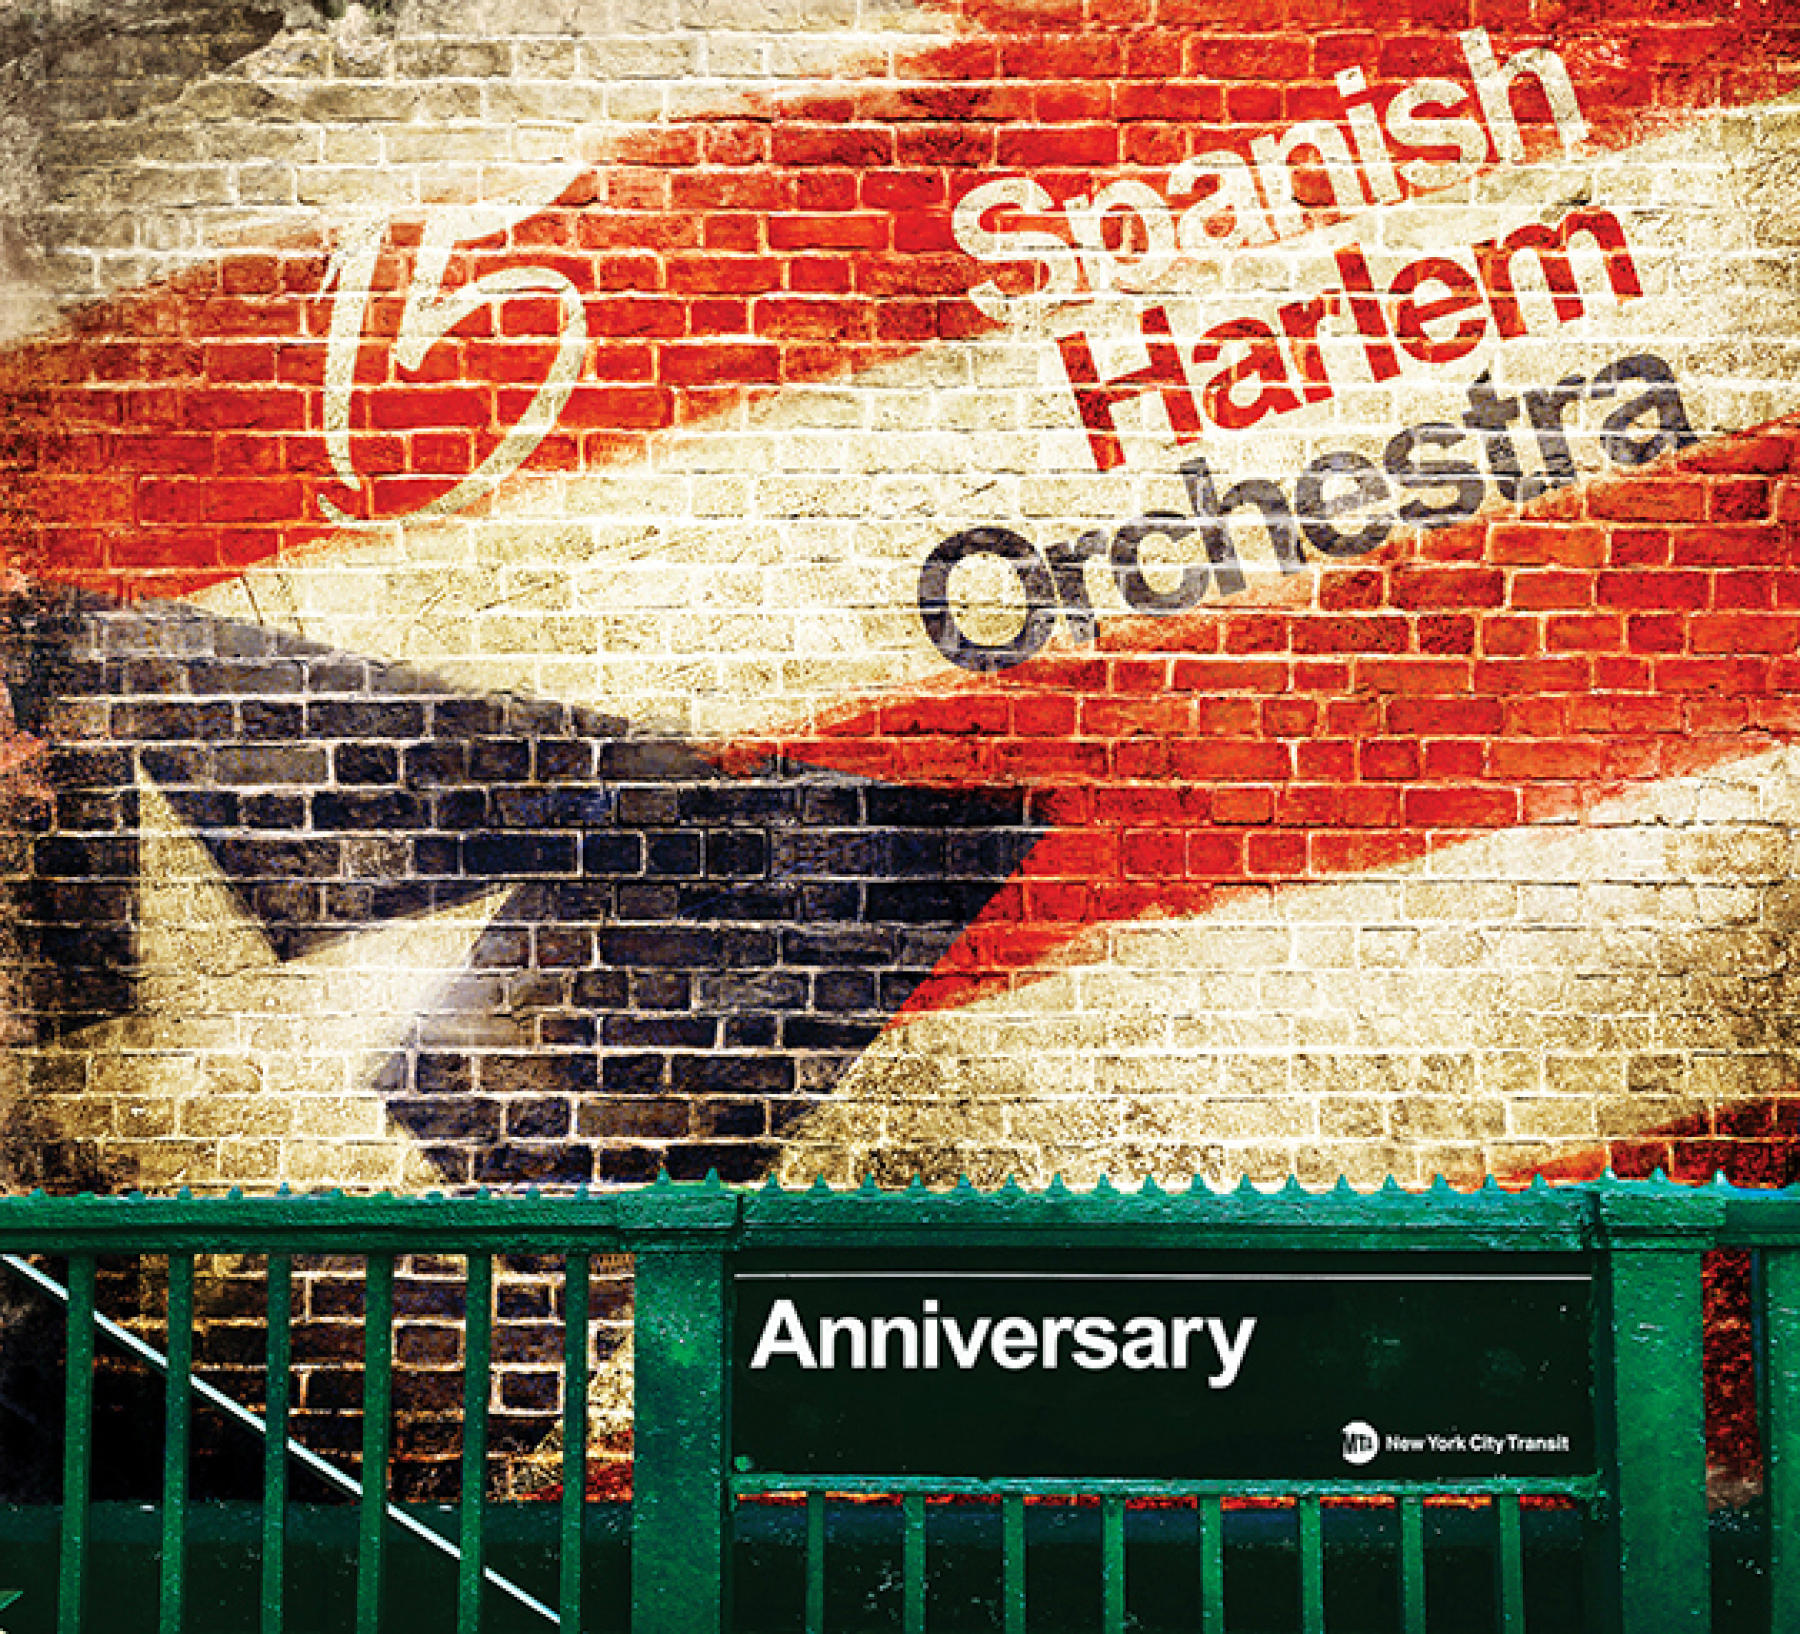 Spanish Harlem Orchestra Anniversary download